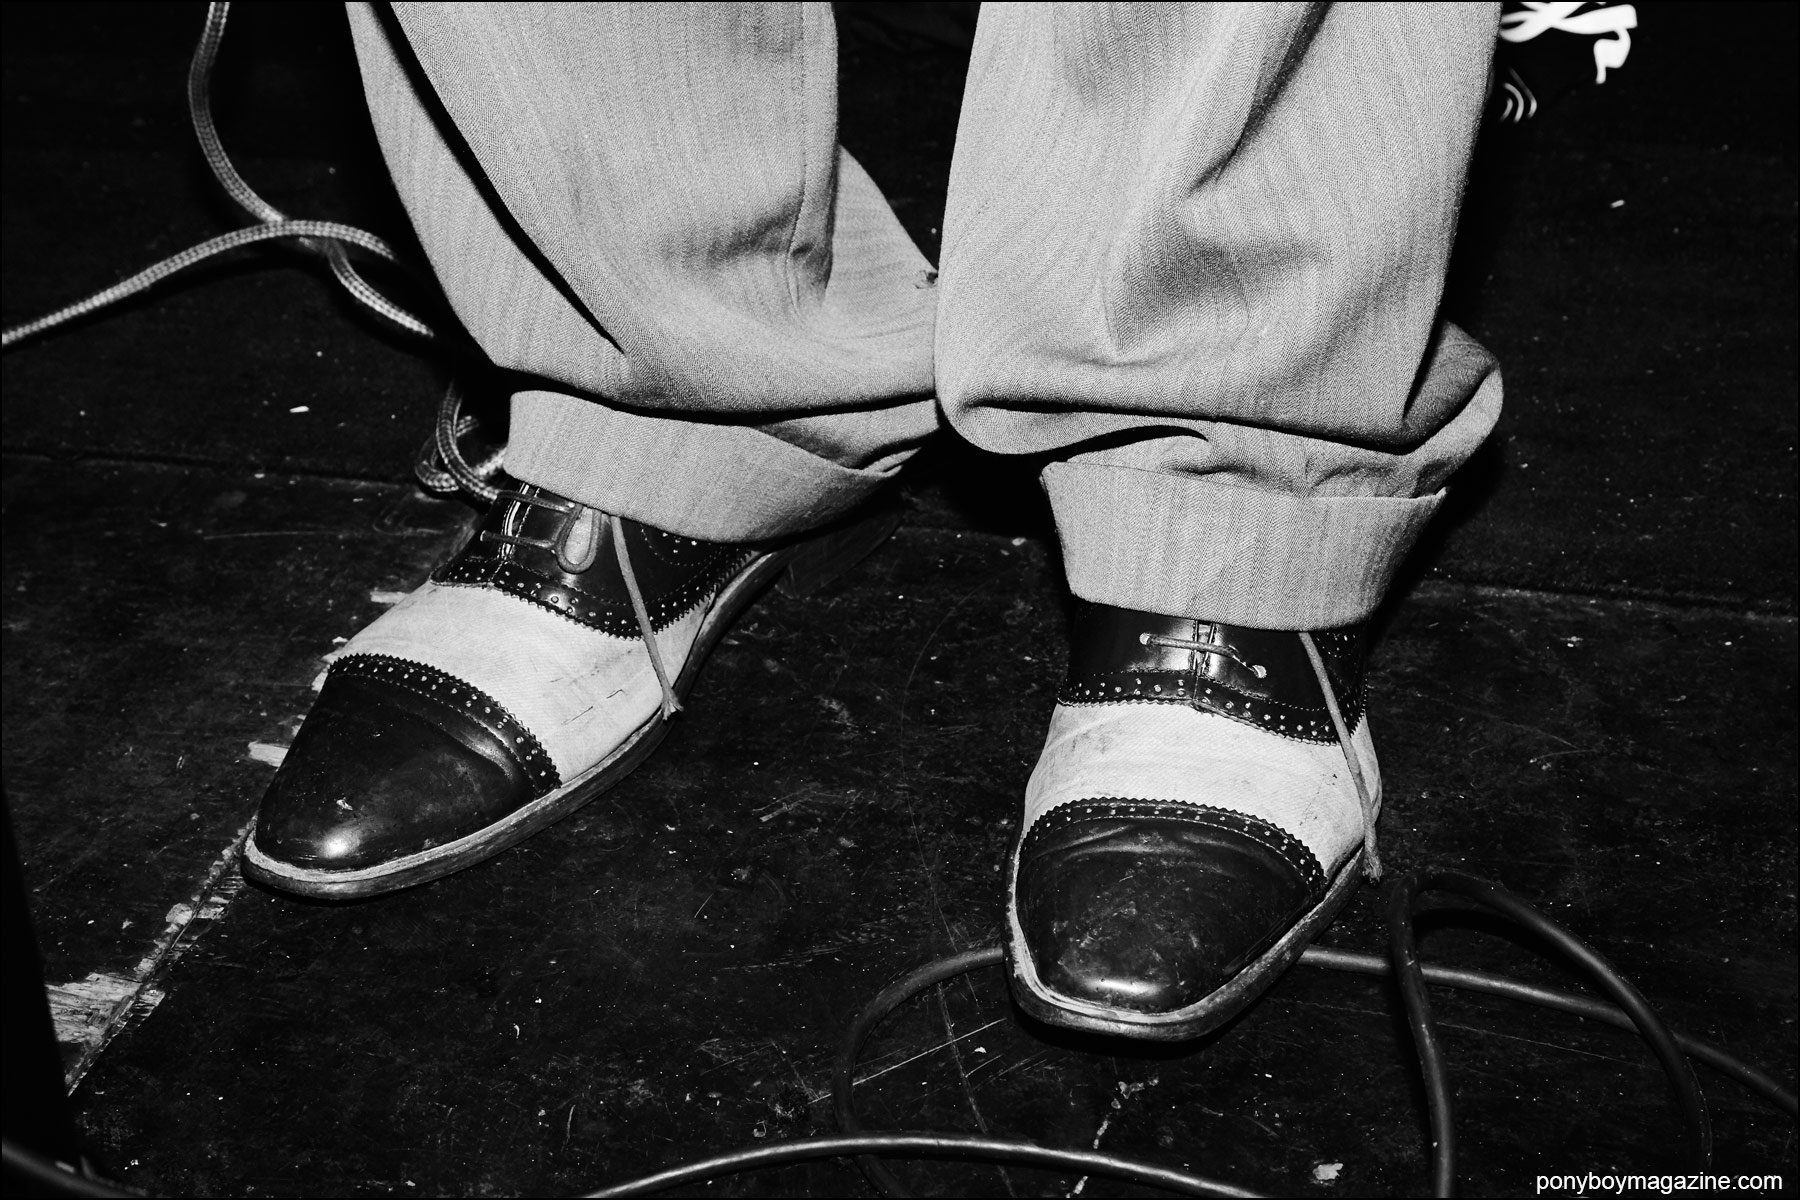 Vintage spectator shoes worn by rockabilly singer Almon Loos, at Hula Rock Vol 2 weekender. Photograph by Alexander Thompson for Ponyboy magazine NY.